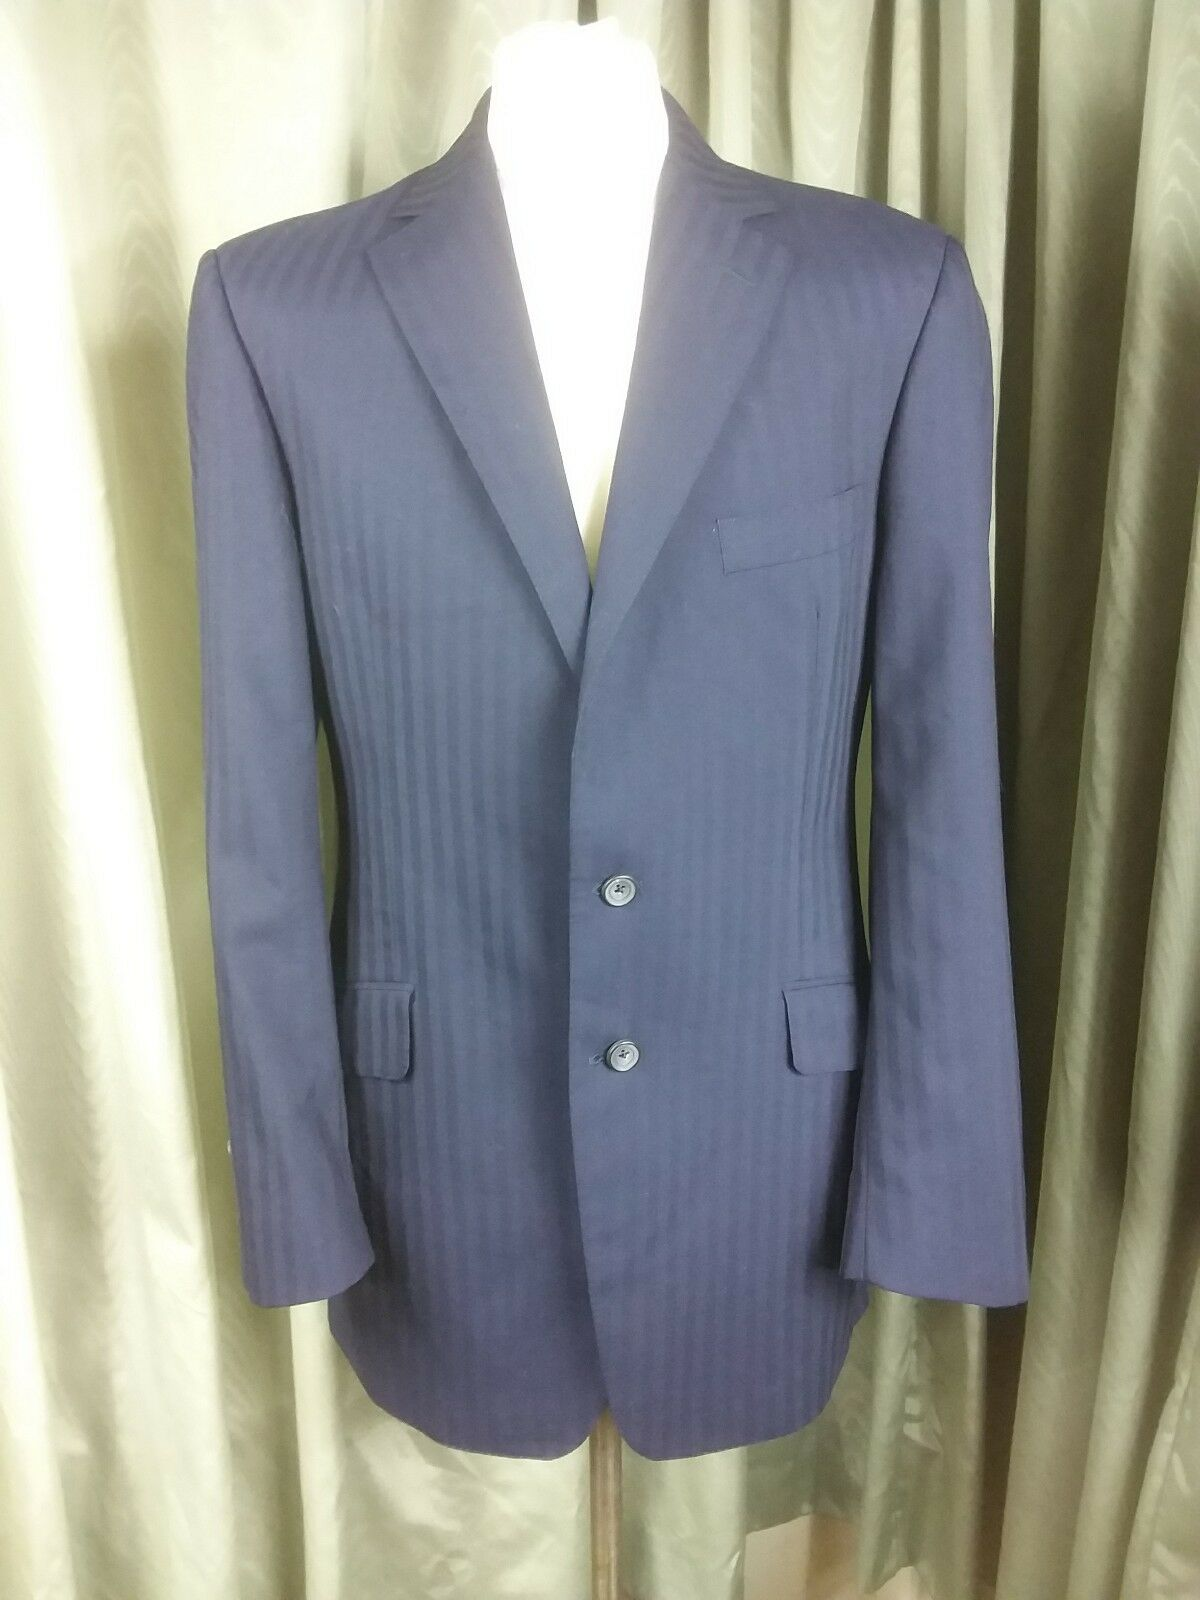 Richard James Mayfair Wool Navy bluee Broad Weave Striped Suit C42R W36 L31.5